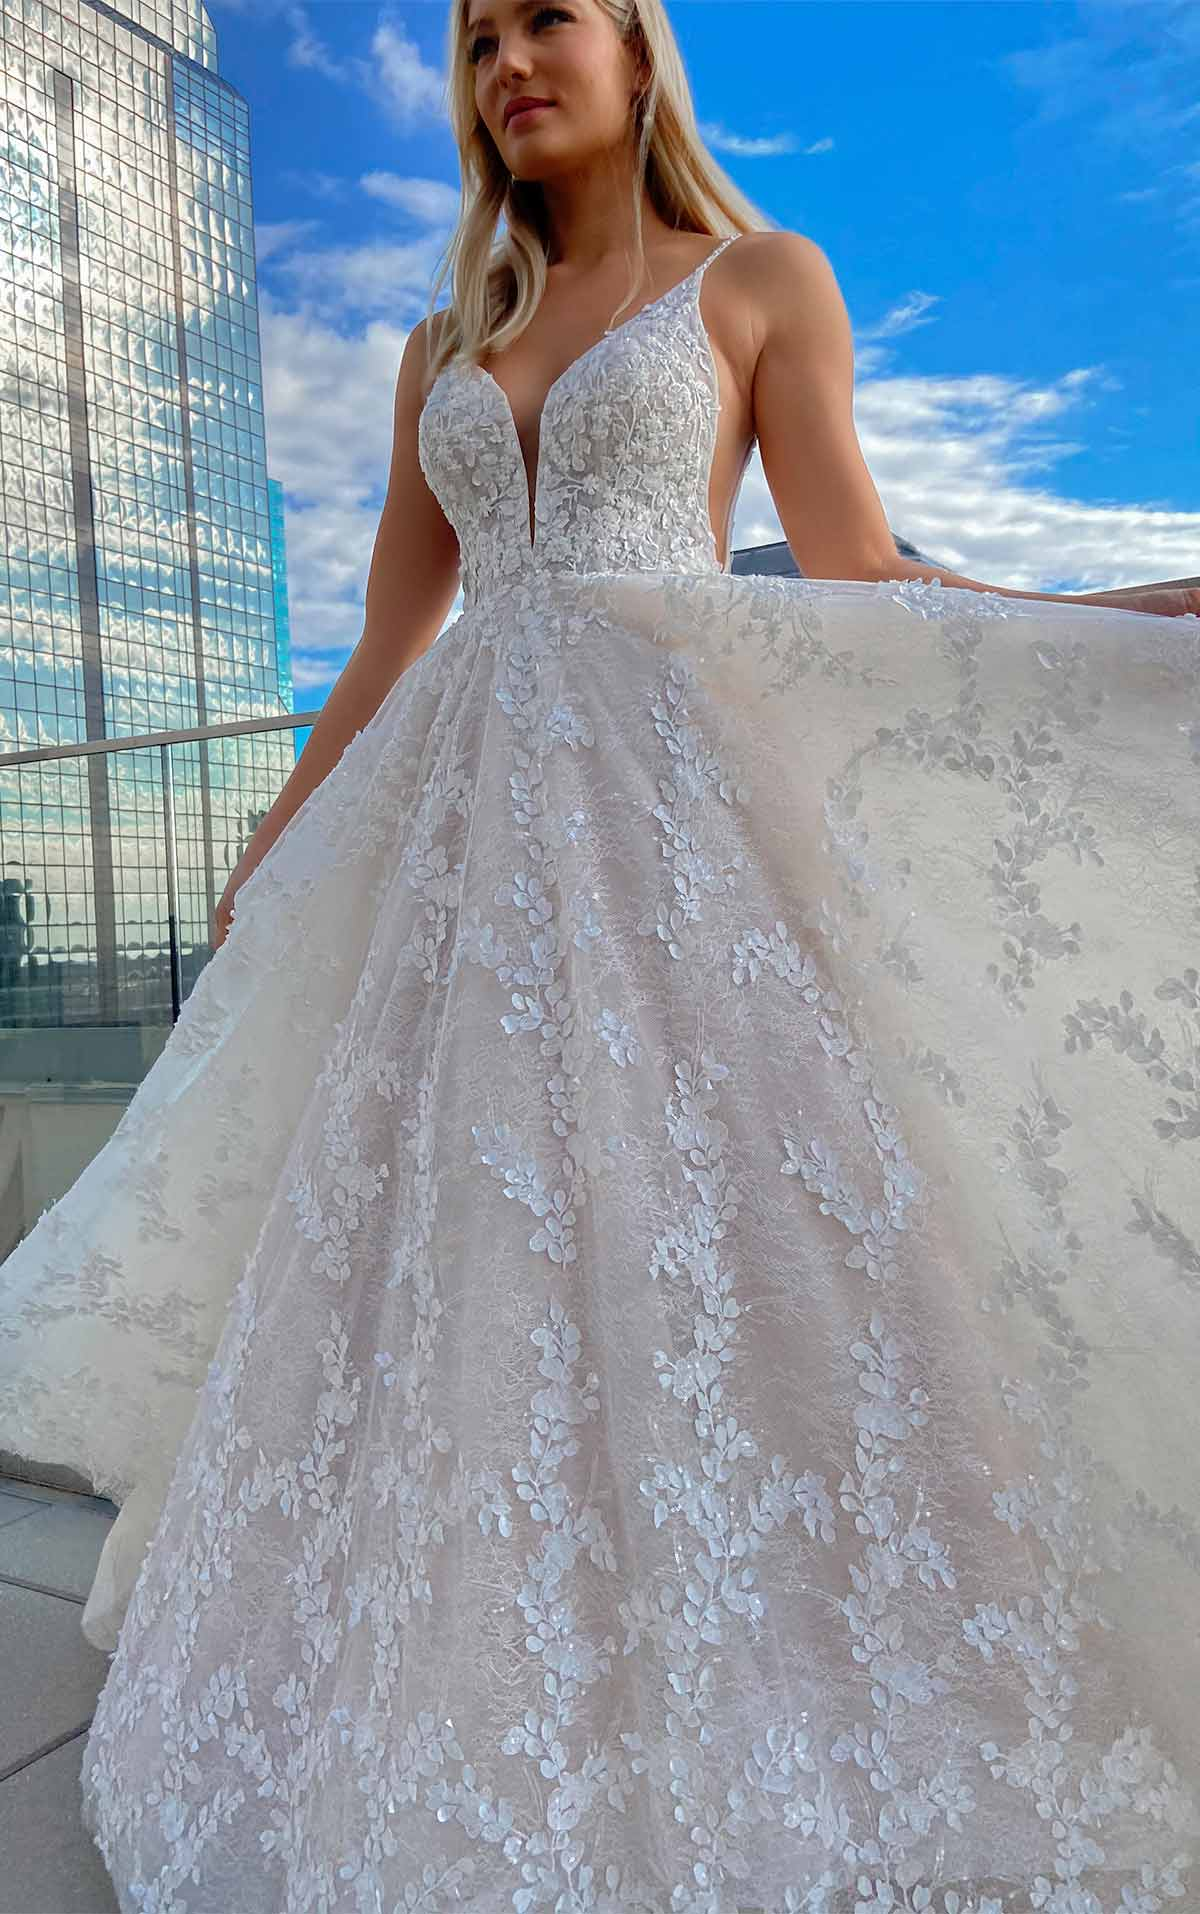 1325 Backless Romantic A-Line Wedding Dress with 3D Floral Detail by Martina Liana